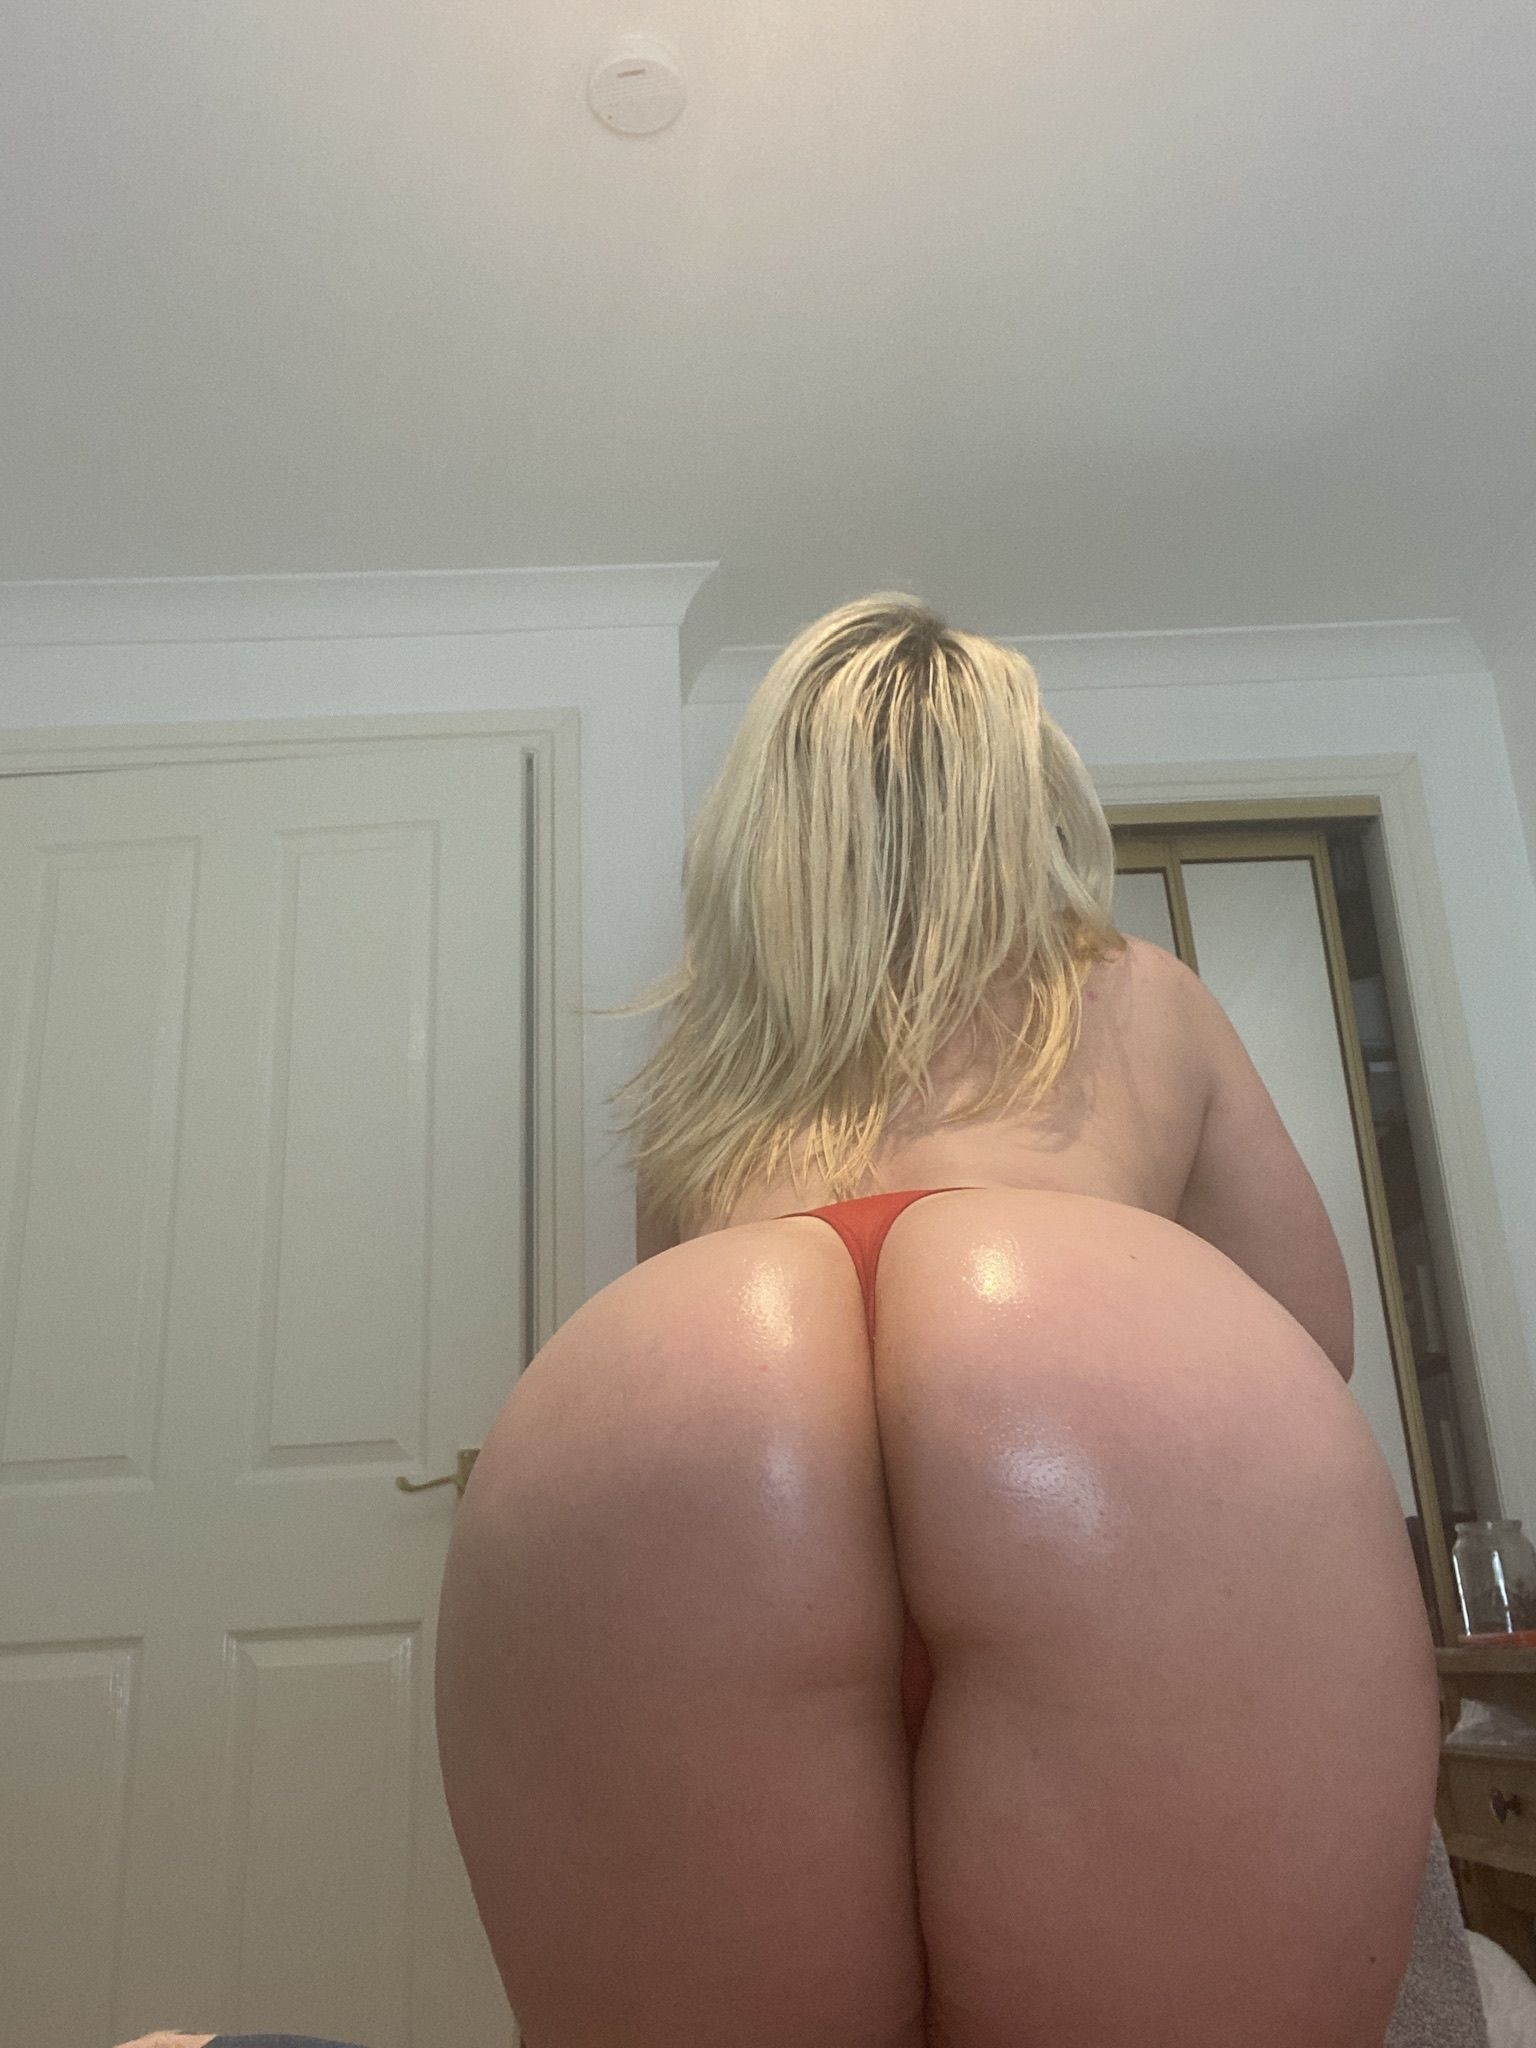 North east escorts independent escort agency in newcastle north east uksexy escort, sexy escort